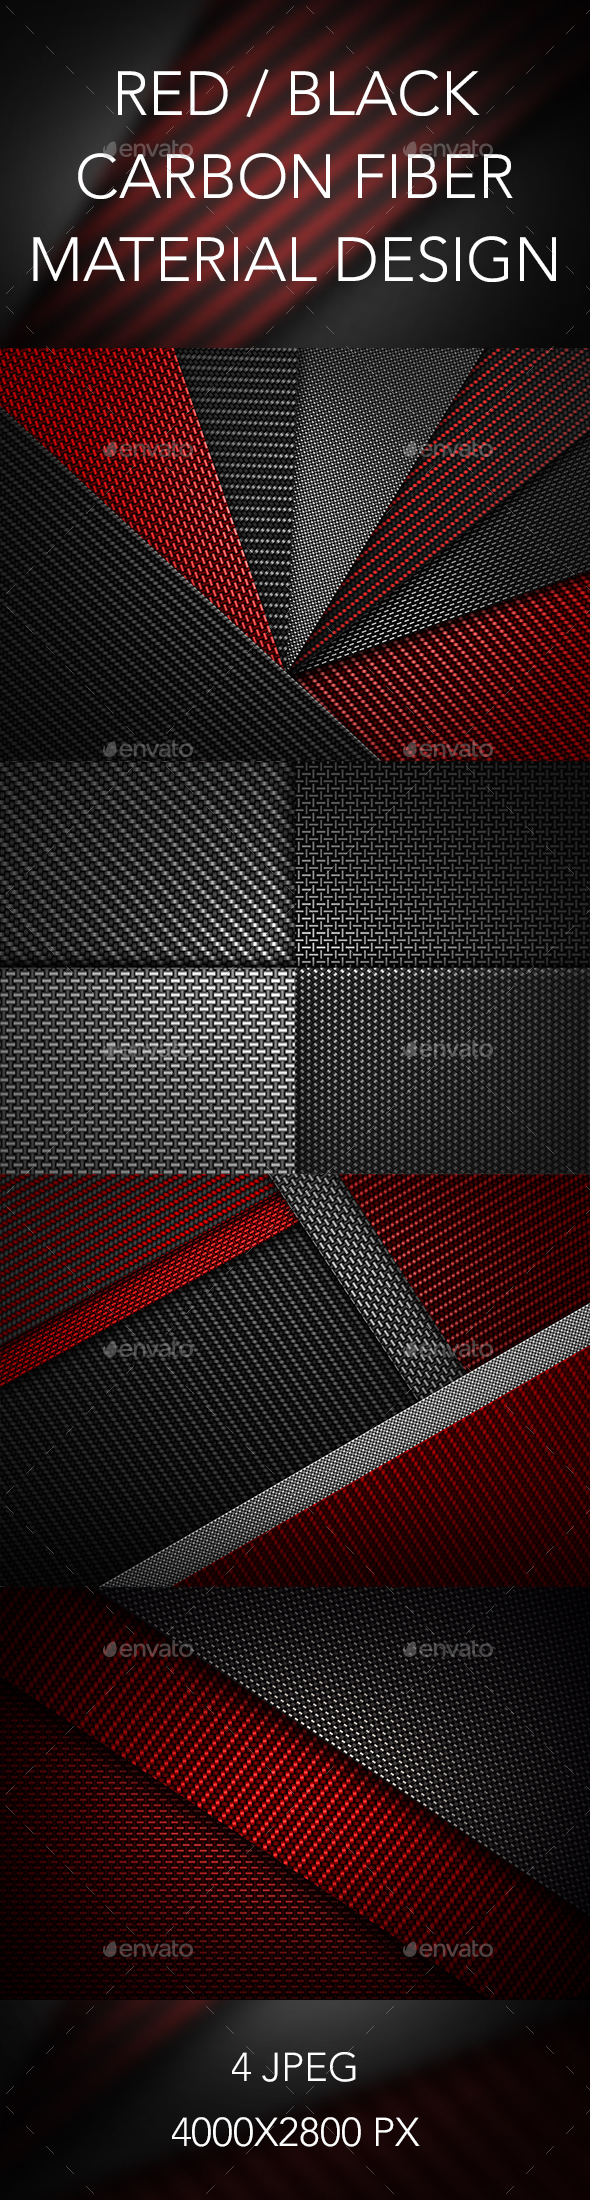 Carbon Fiber Textured Material Design - Abstract Backgrounds